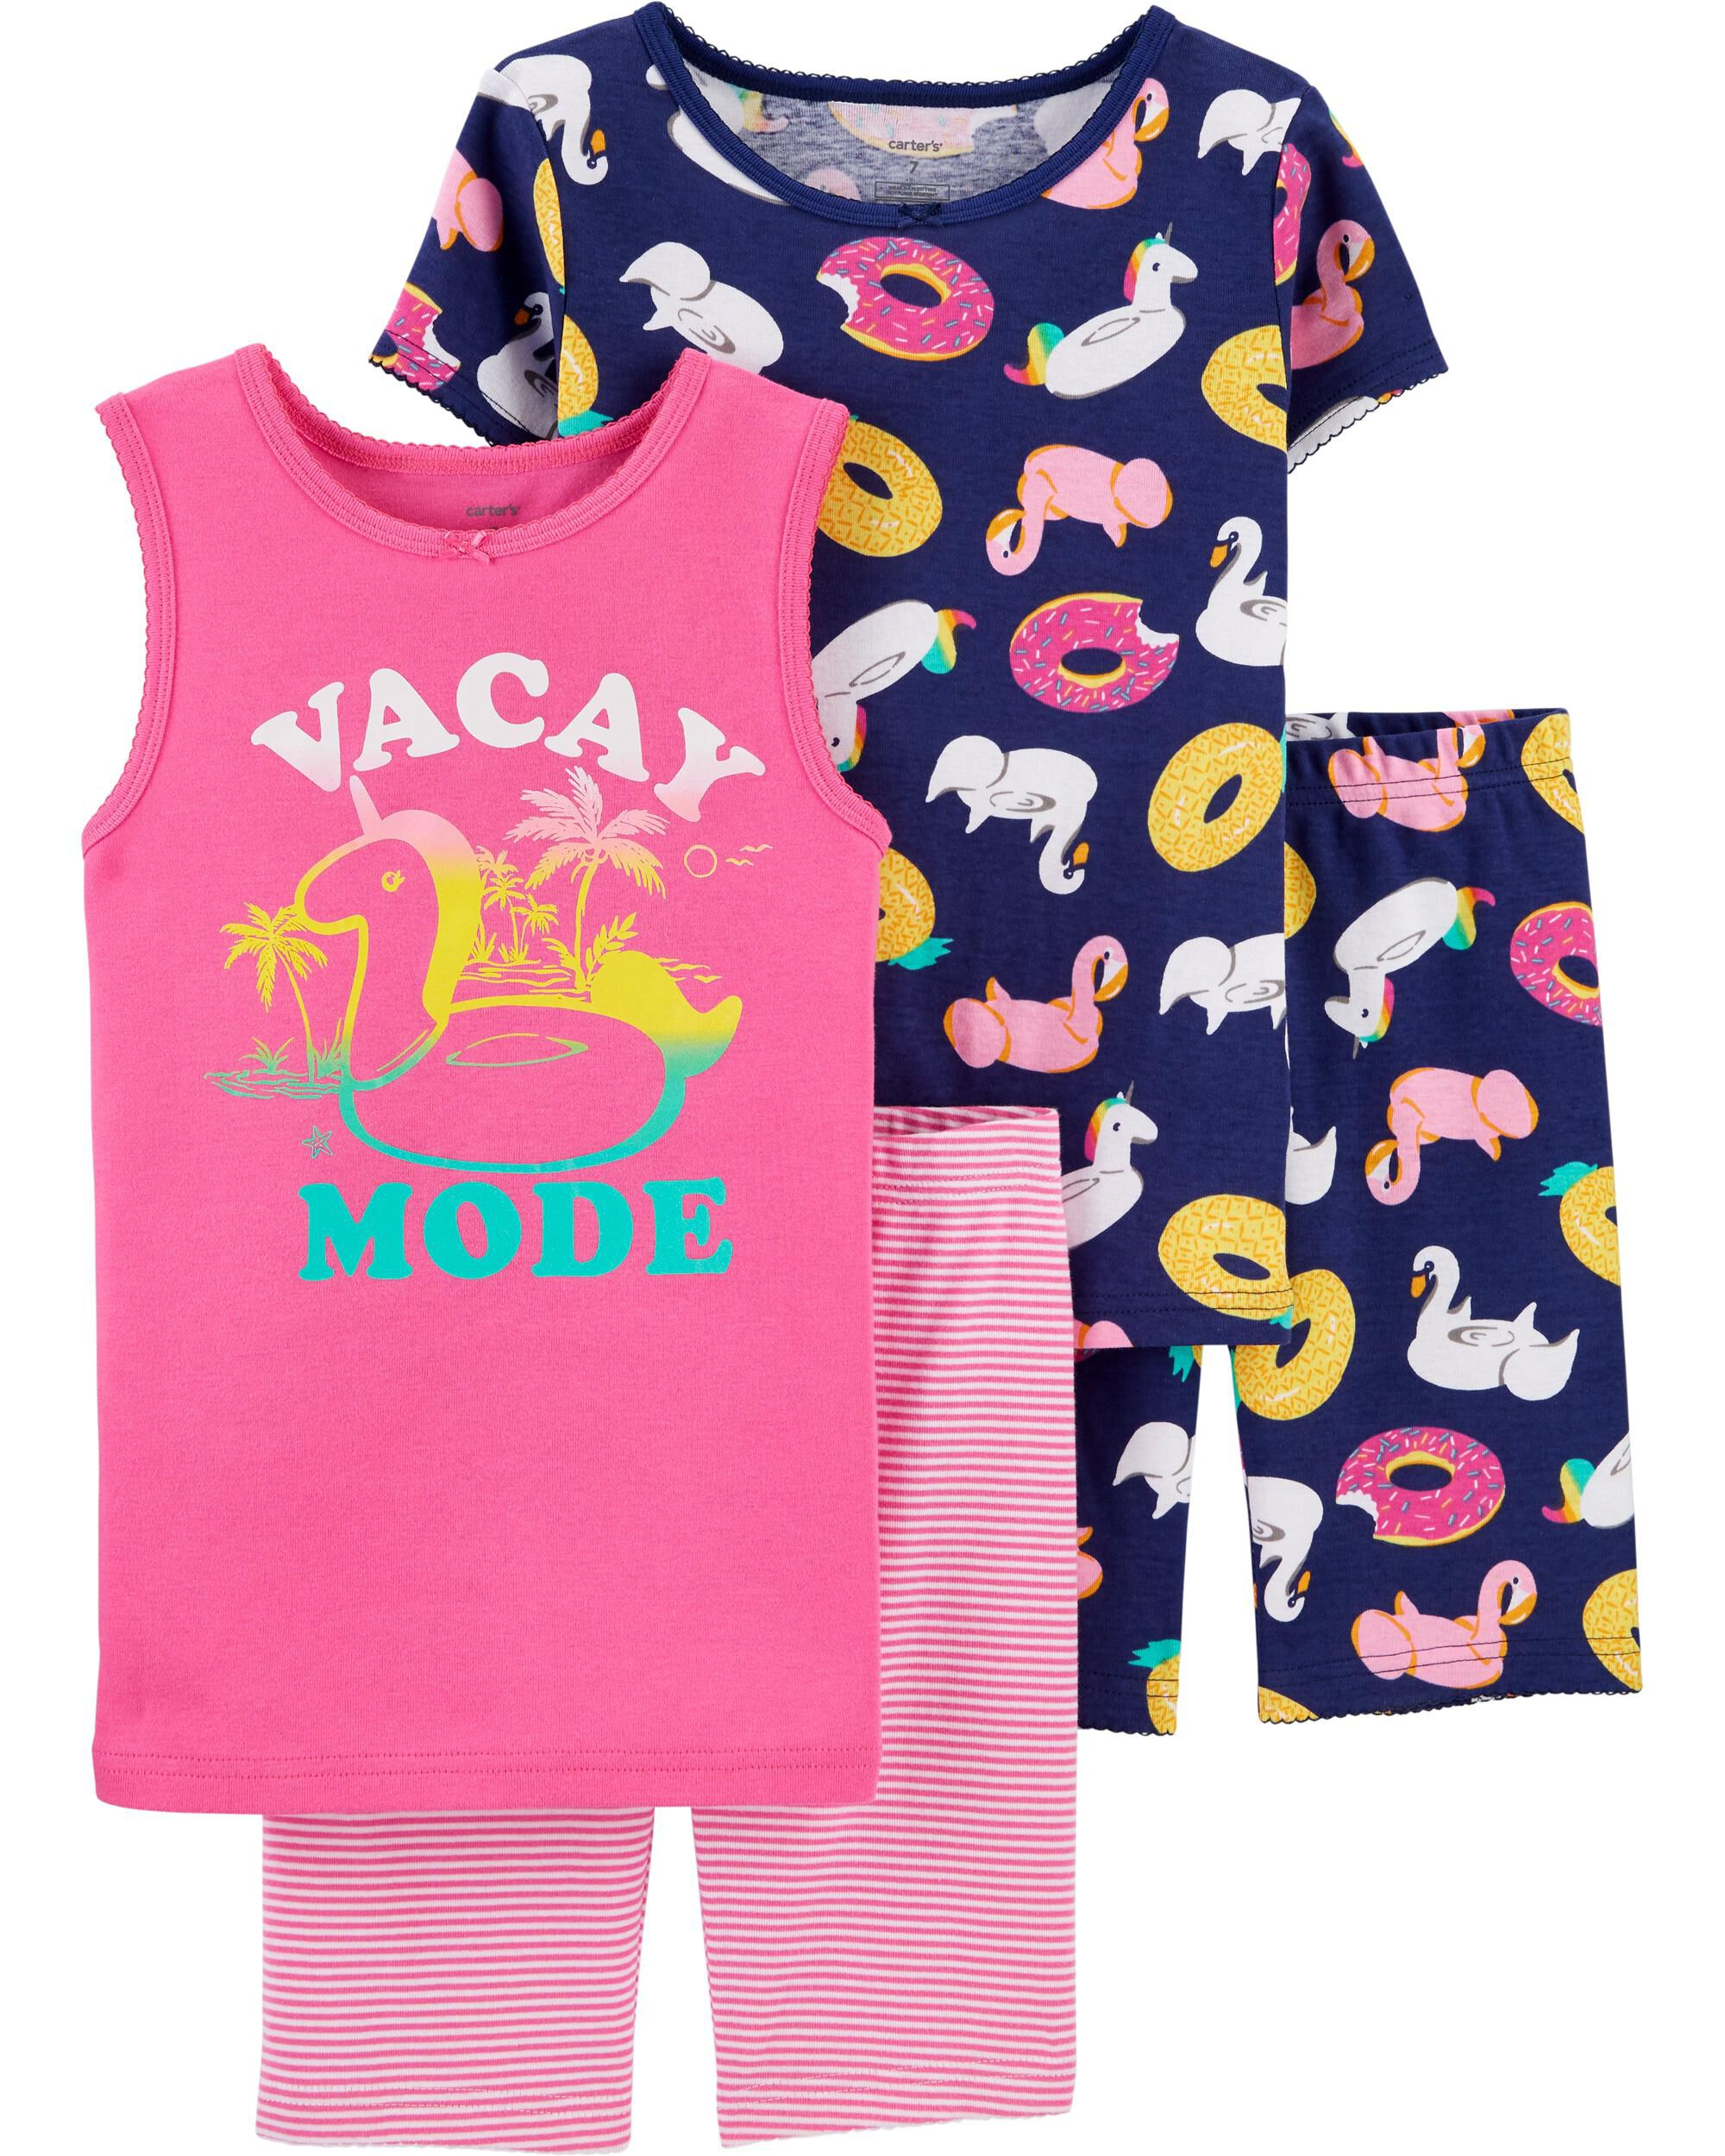 4-Piece Vacay Mode Snug Fit Cotton...